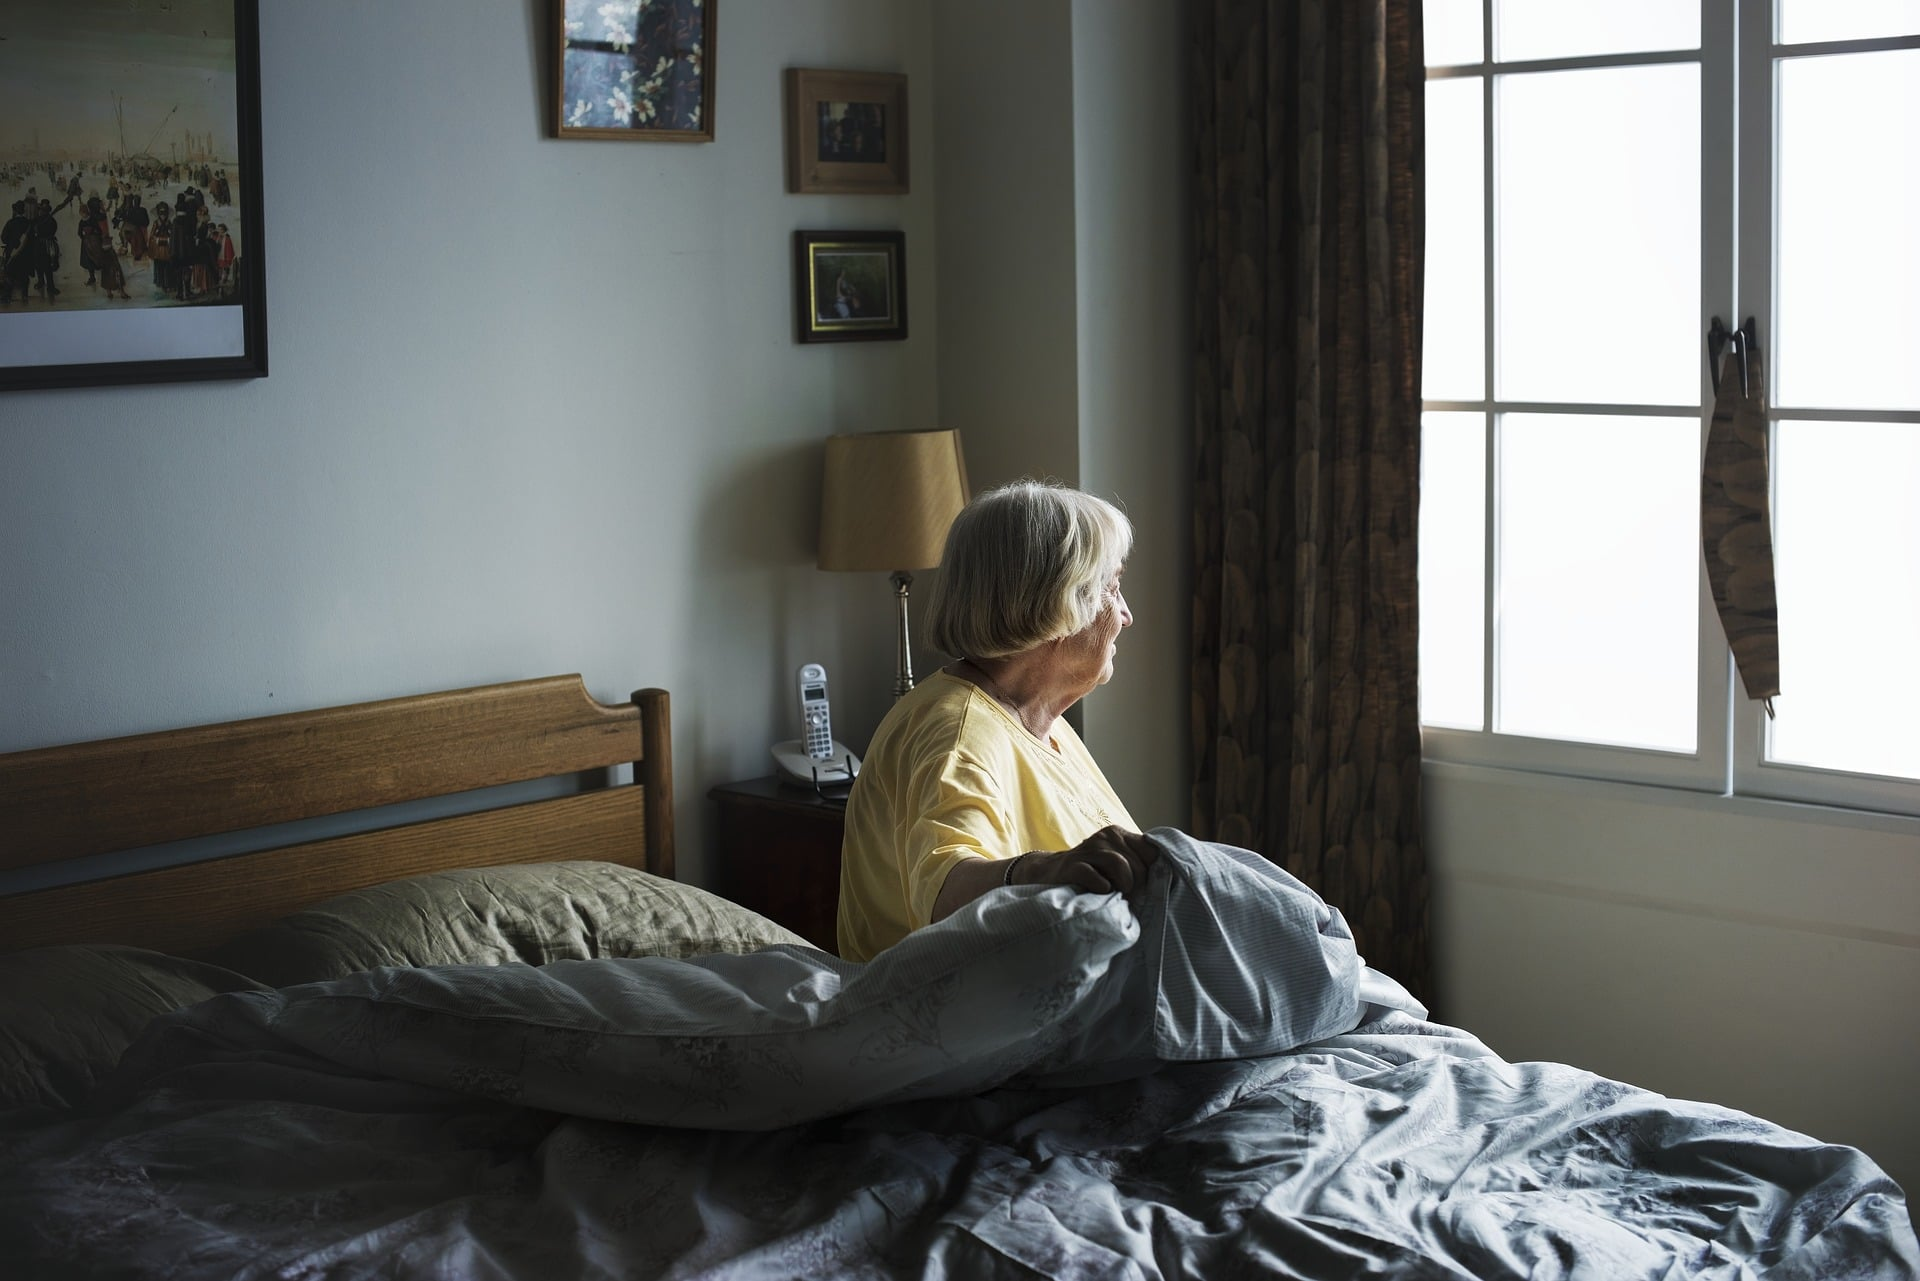 can't pay for nursing home care costs - elderly women getting out of bed